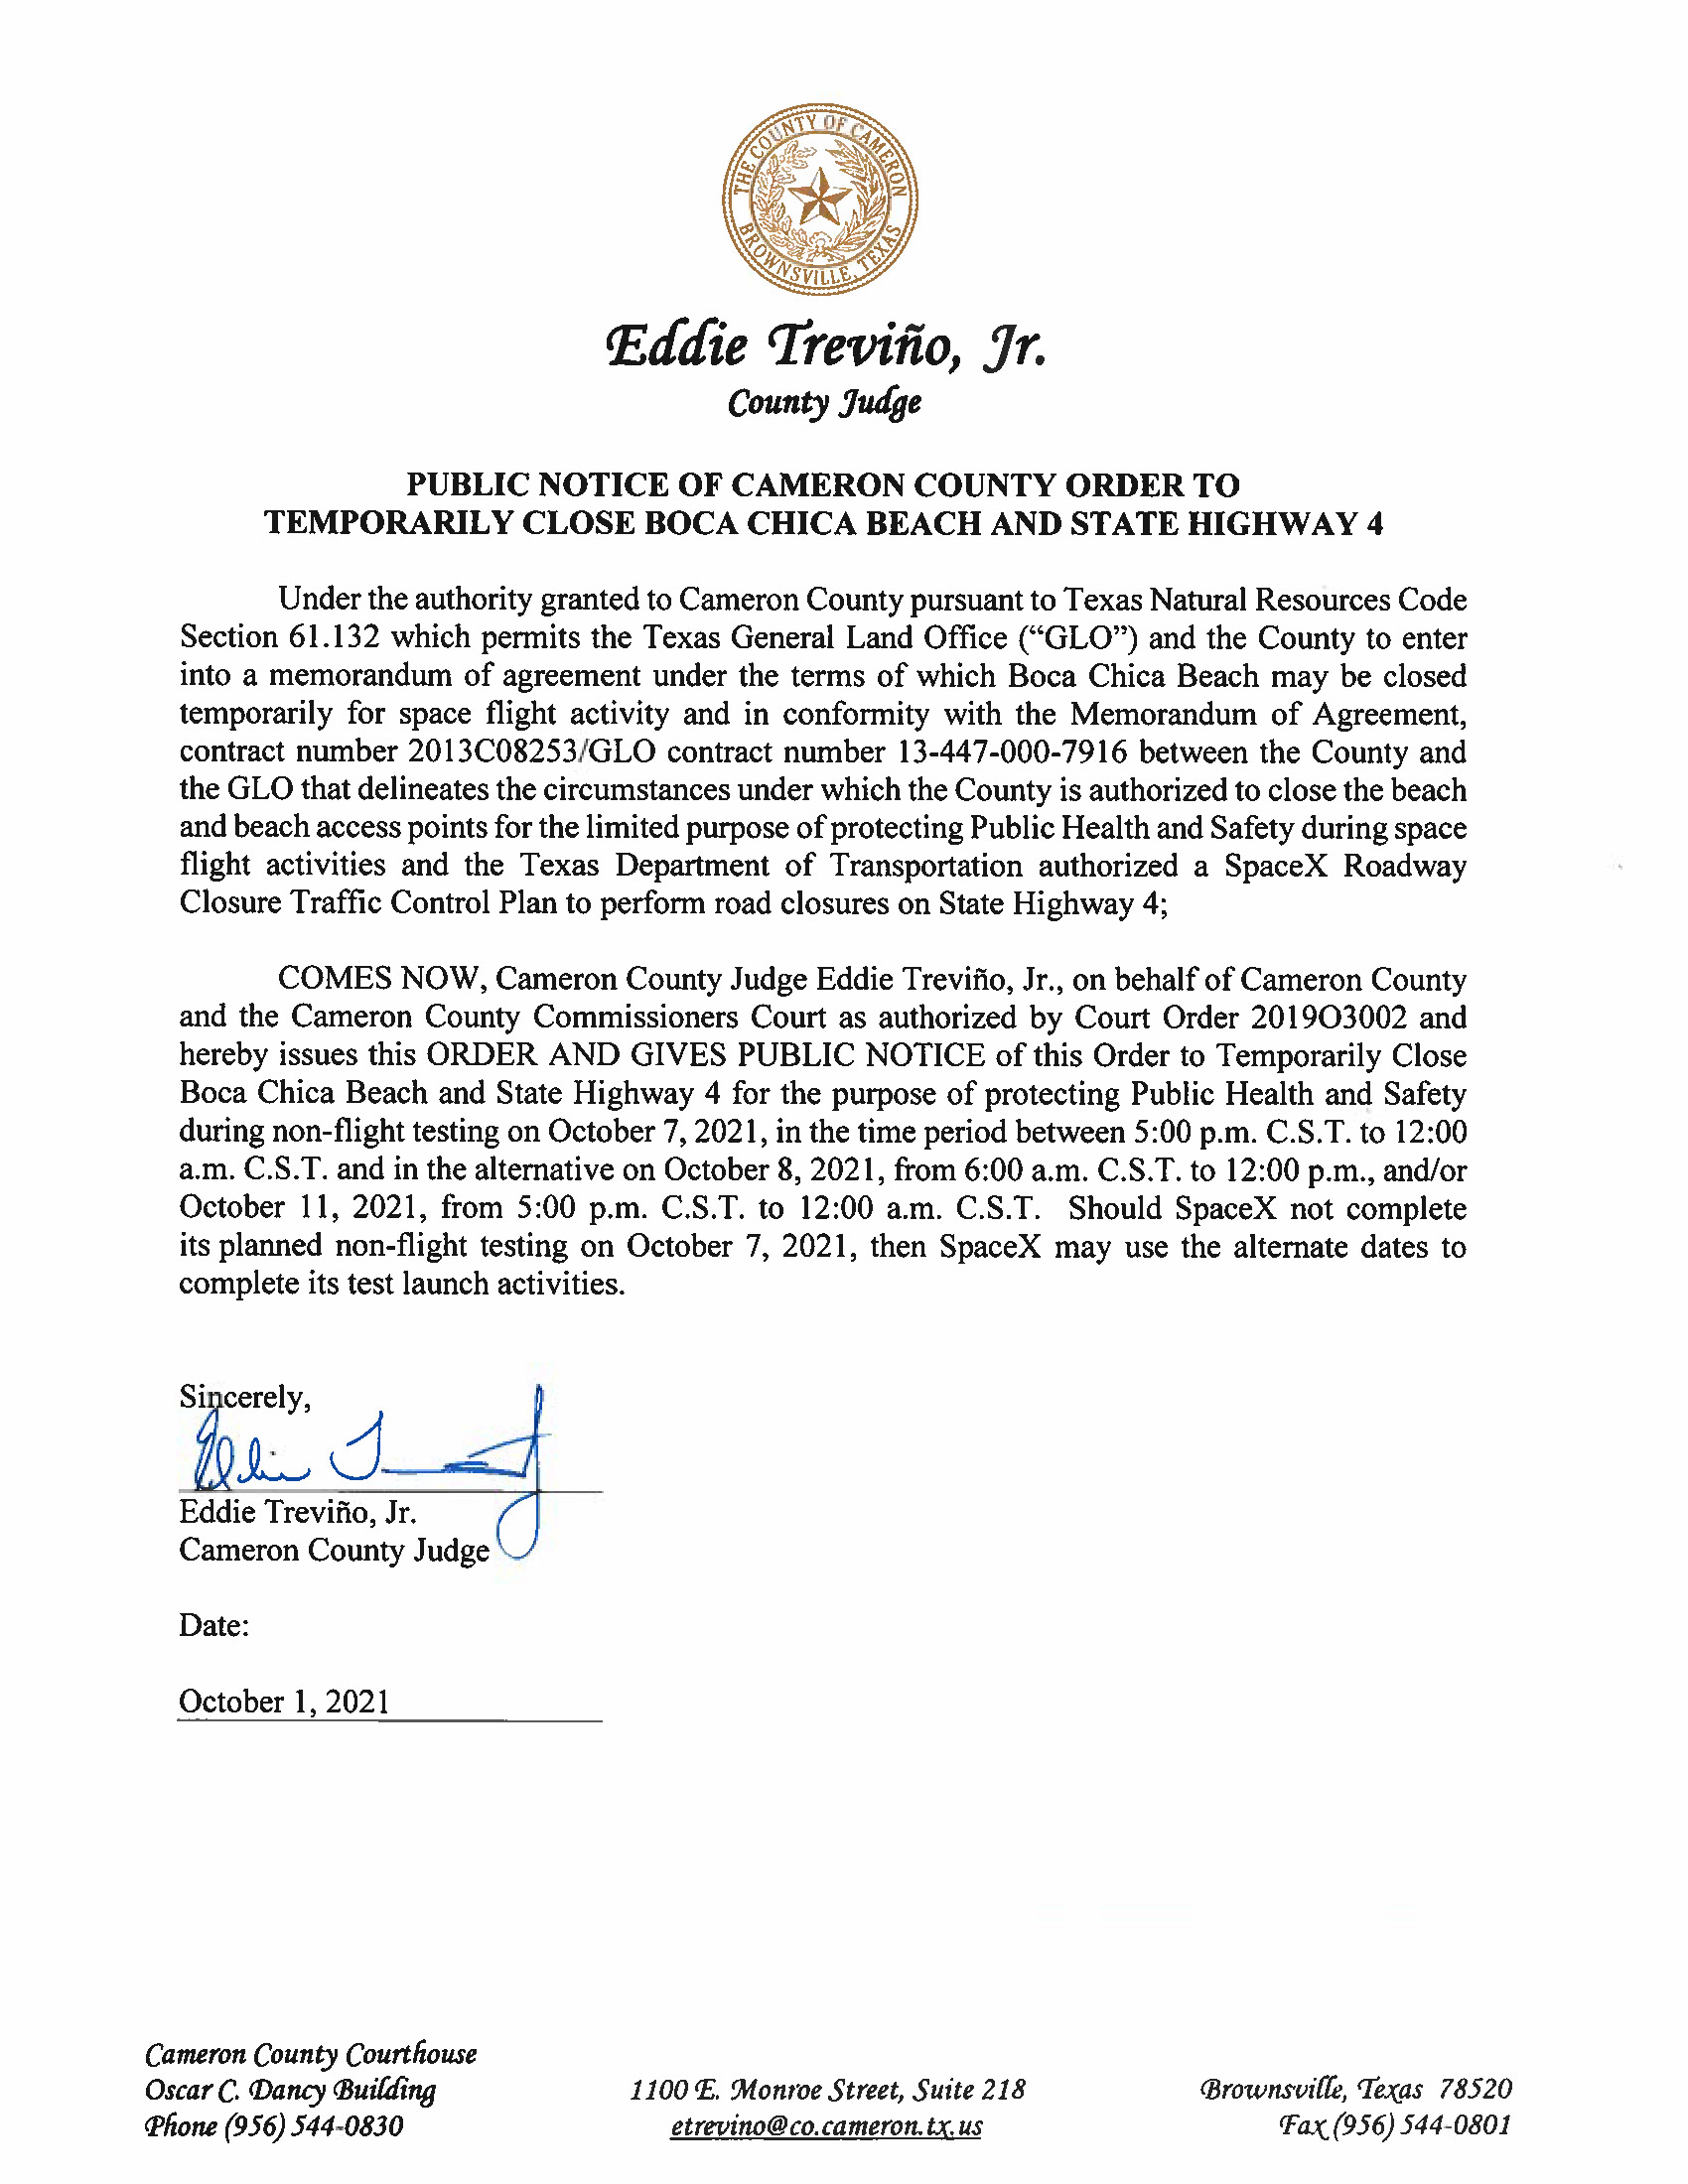 PUBLIC NOTICE OF CAMERON COUNTY ORDER TO TEMP. BEACH CLOSURE AND HWY.10.07.2021